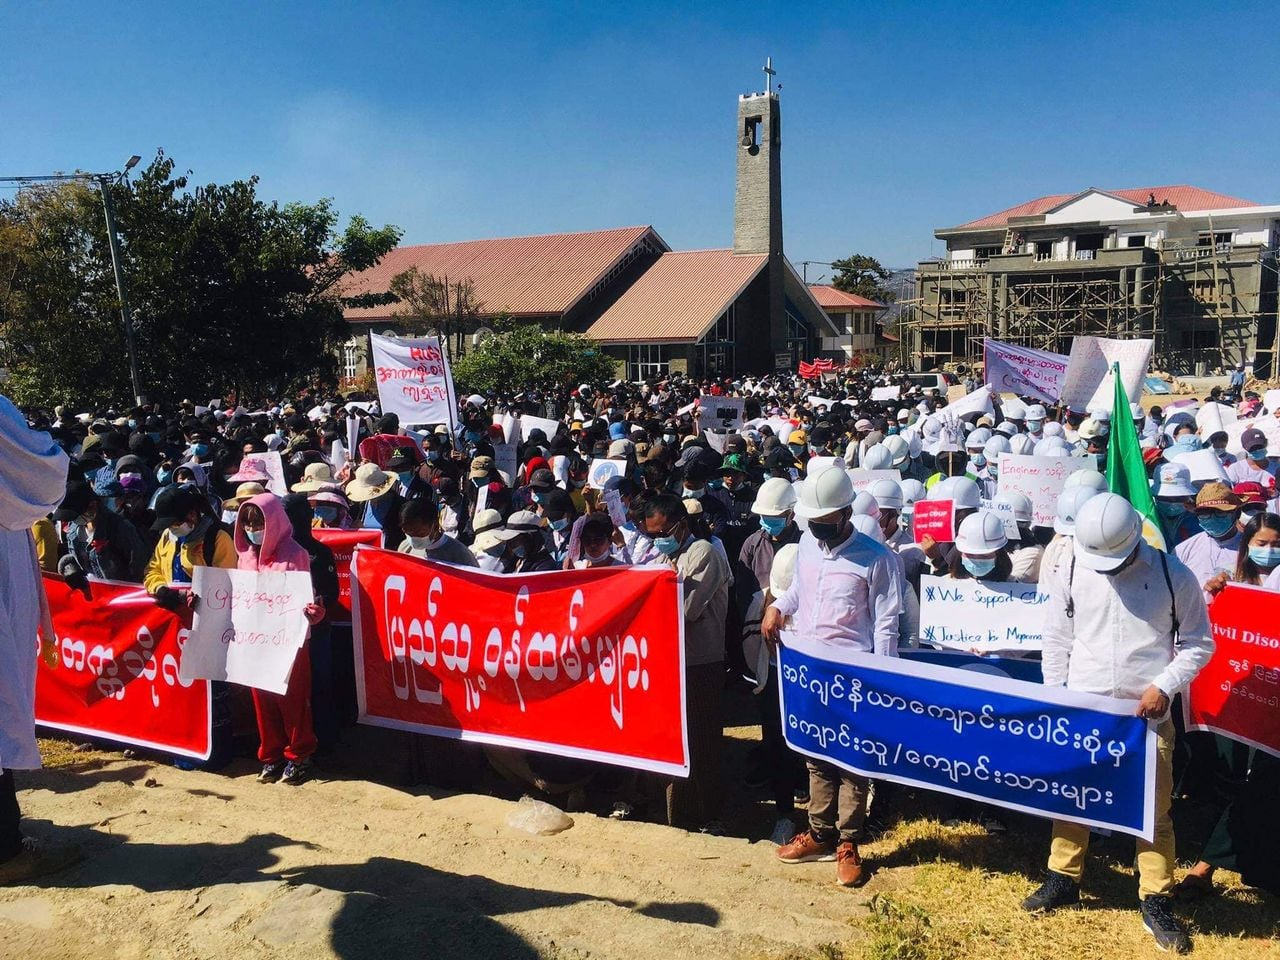 Protests Against Military Govt Erupt Across Chin State | Burma News International